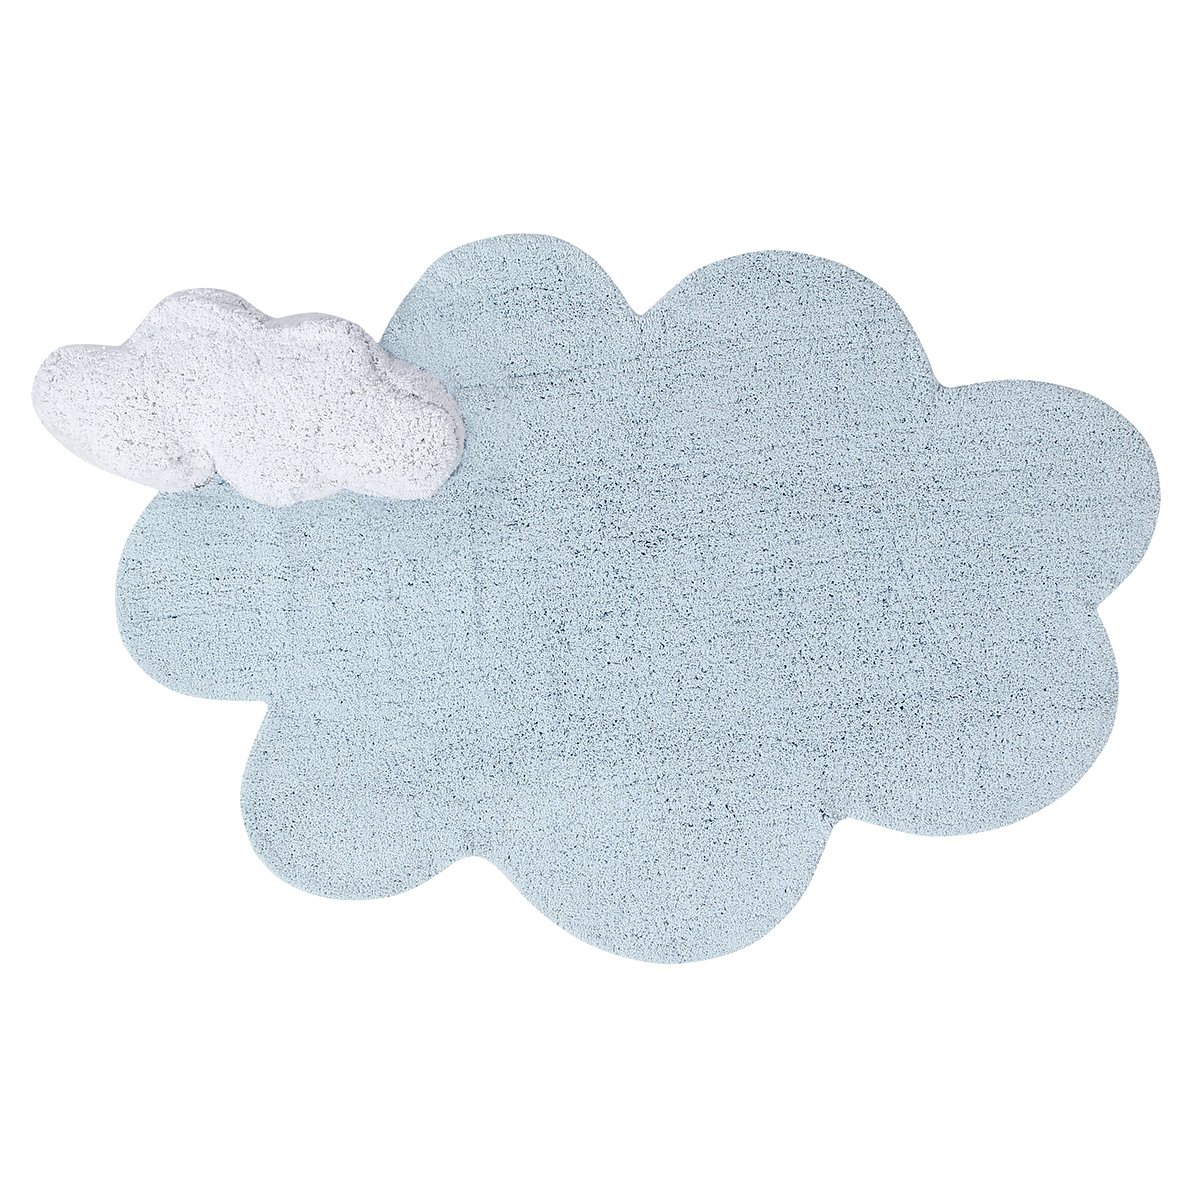 Tapis Tapis Lavable Puffy Dream Bleu - 70 x 110 cm Tapis Lavable Puffy Dream Bleu - 70 x 110 cm